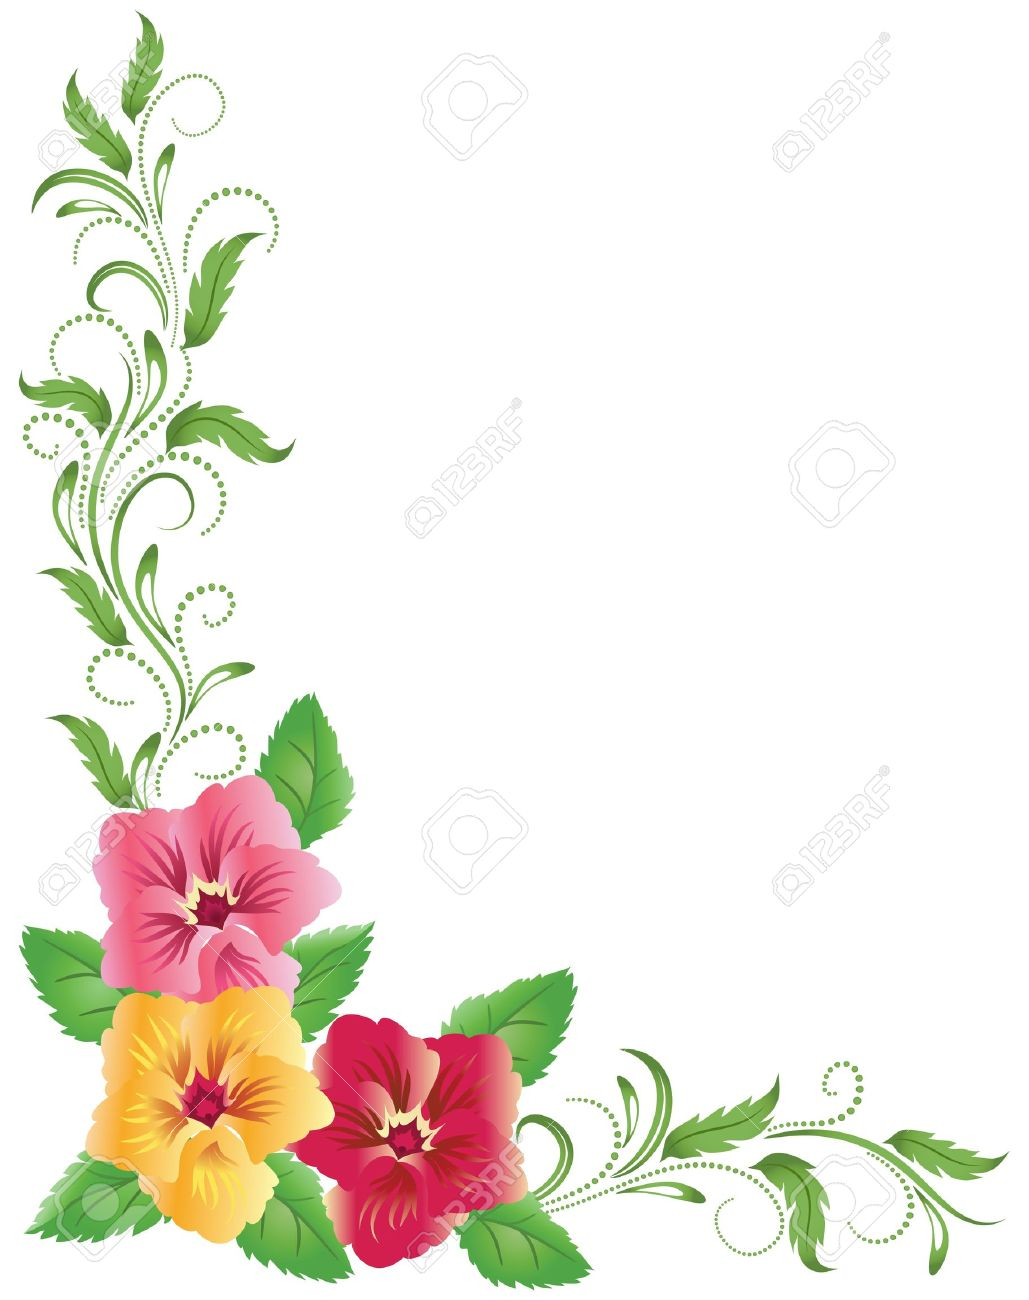 Pink and yellow pansies with green floral ornament - 14311433